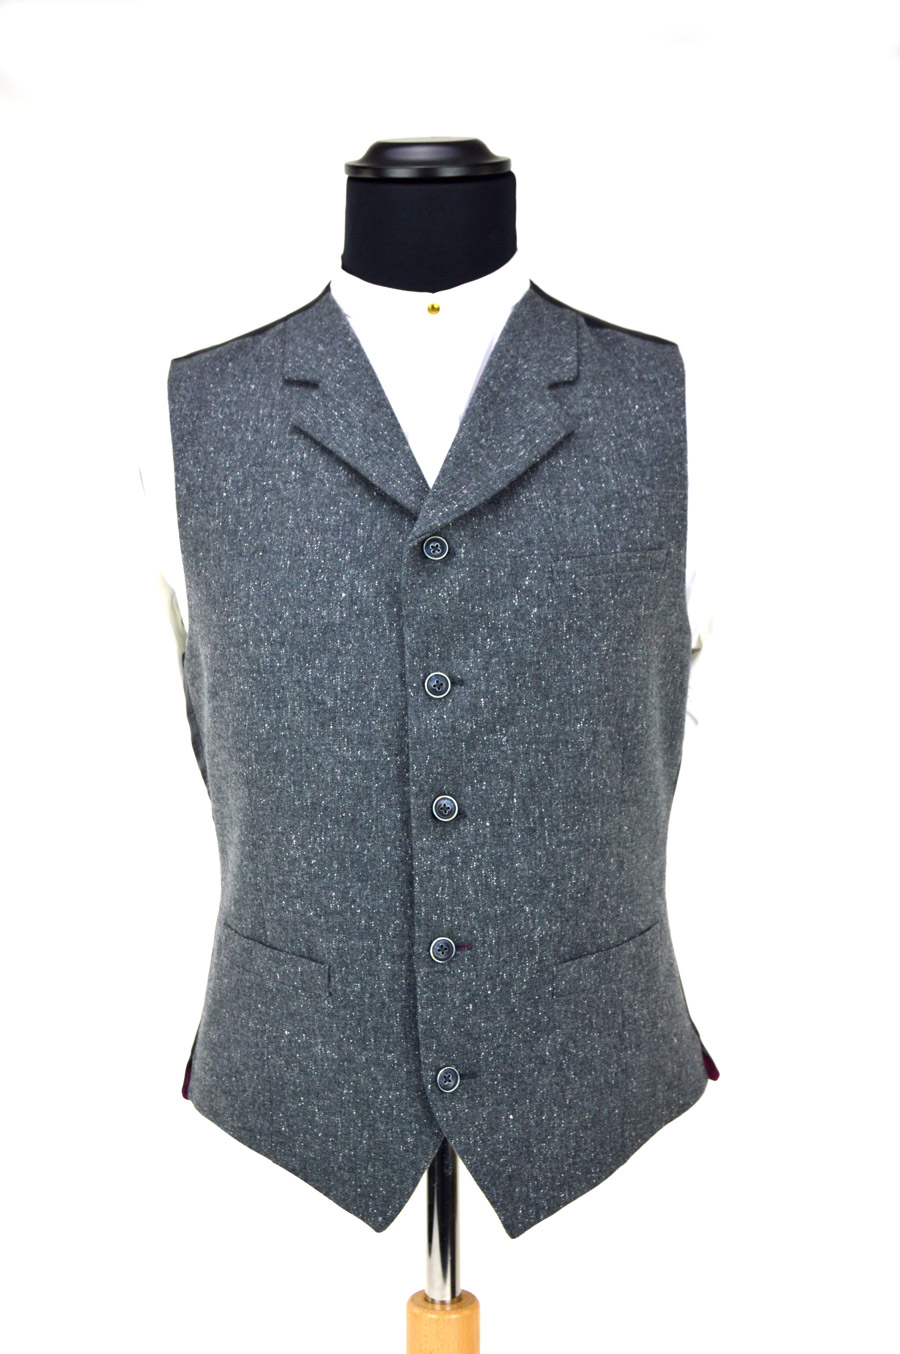 noun. Chiefly British. vest (def 1).; an 18th-century garment for women that is similar to a man's vest, usually worn with a riding habit.; a man's body garment, often quilted and embroidered and having sleeves, worn under the doublet in the 16th and 17th centuries.